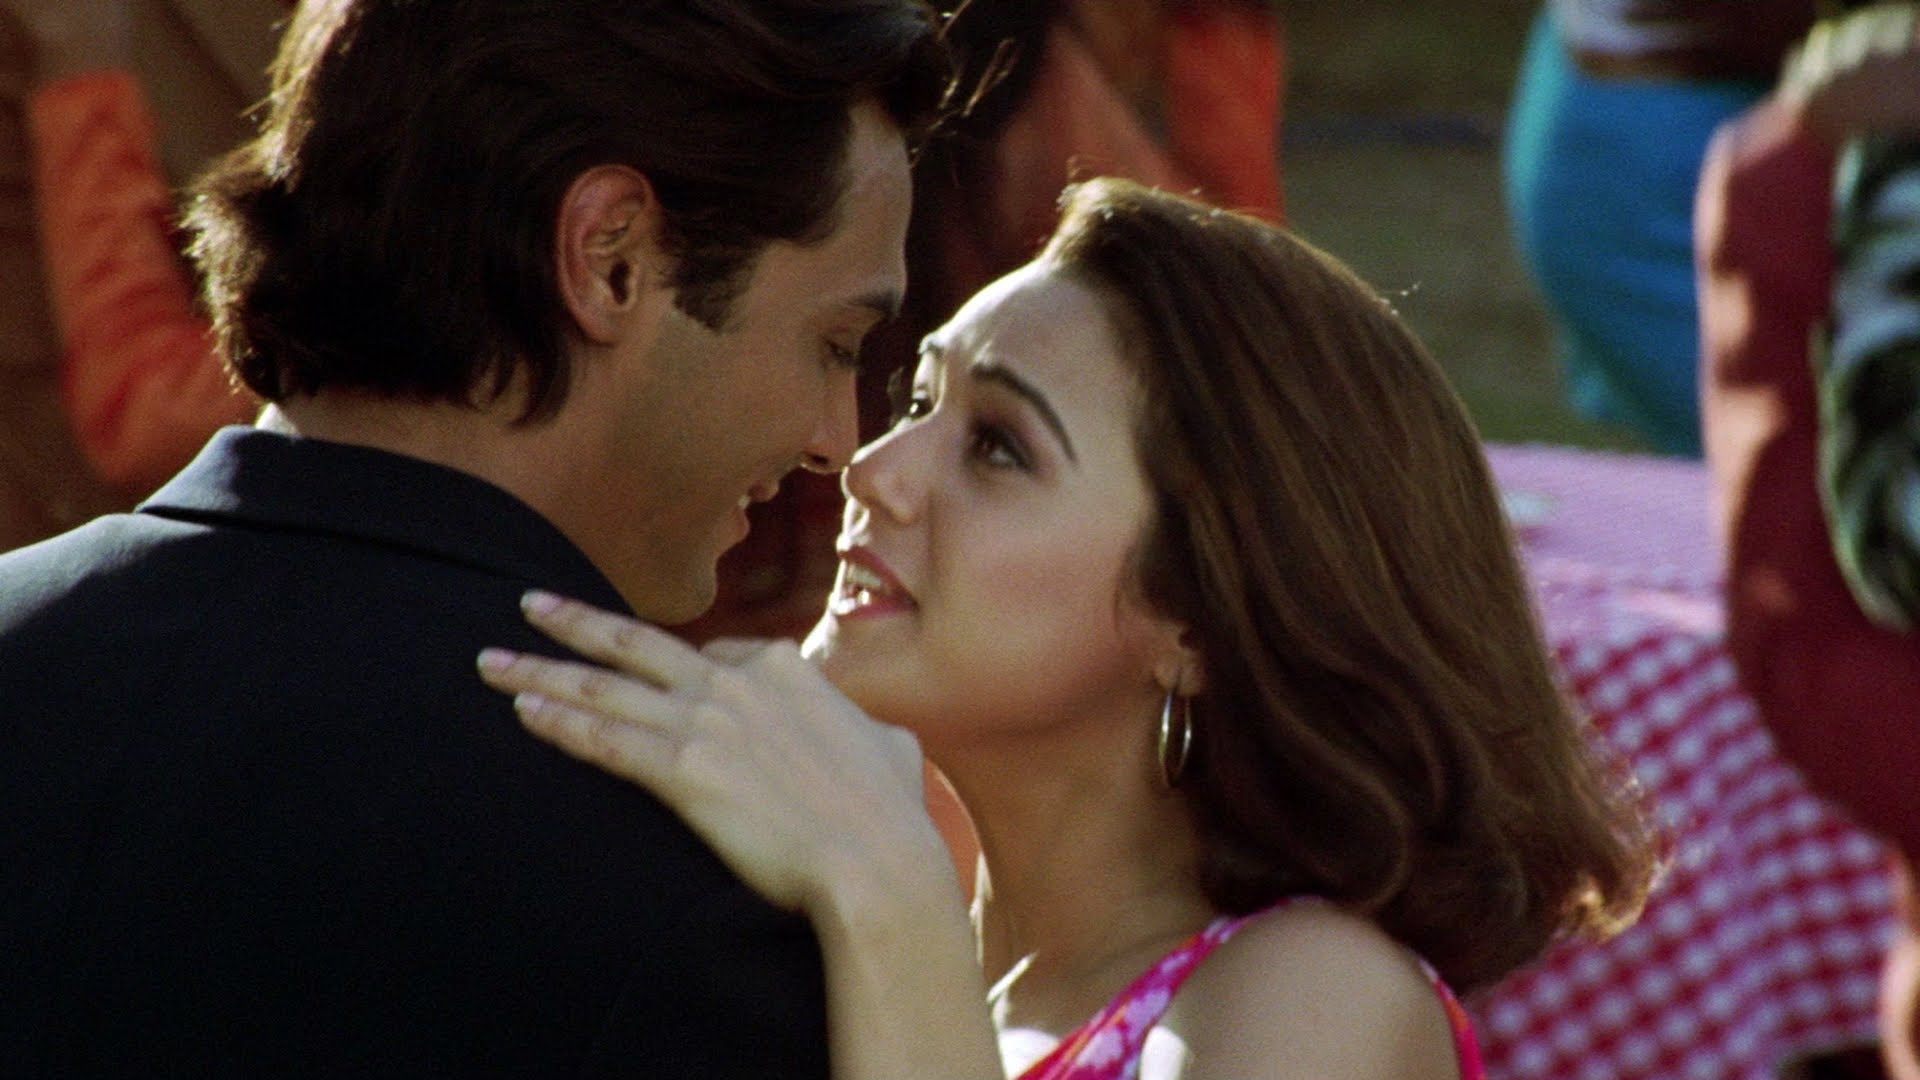 bollywood, love, movie, preity zinta, arjun rampal